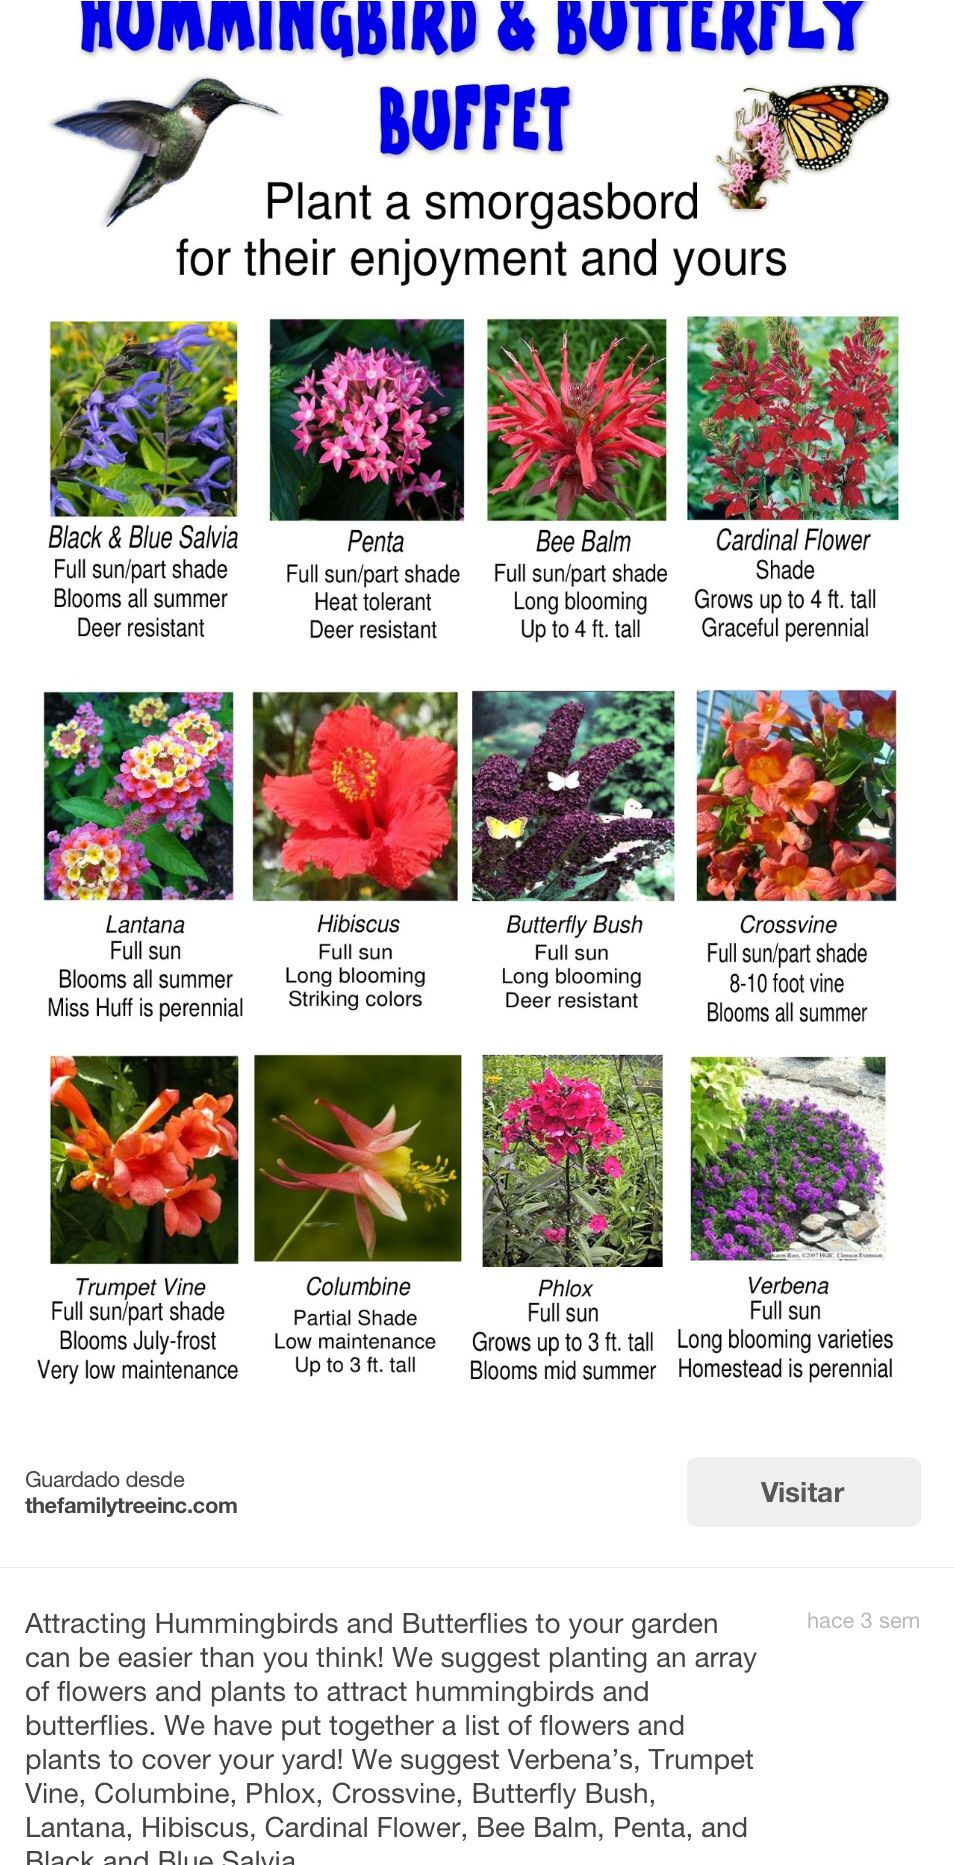 Red, Pink And Orange Flowers That Provide A Hummingbird Butterfly  Buffet.from The Family Tree Garden Center Page